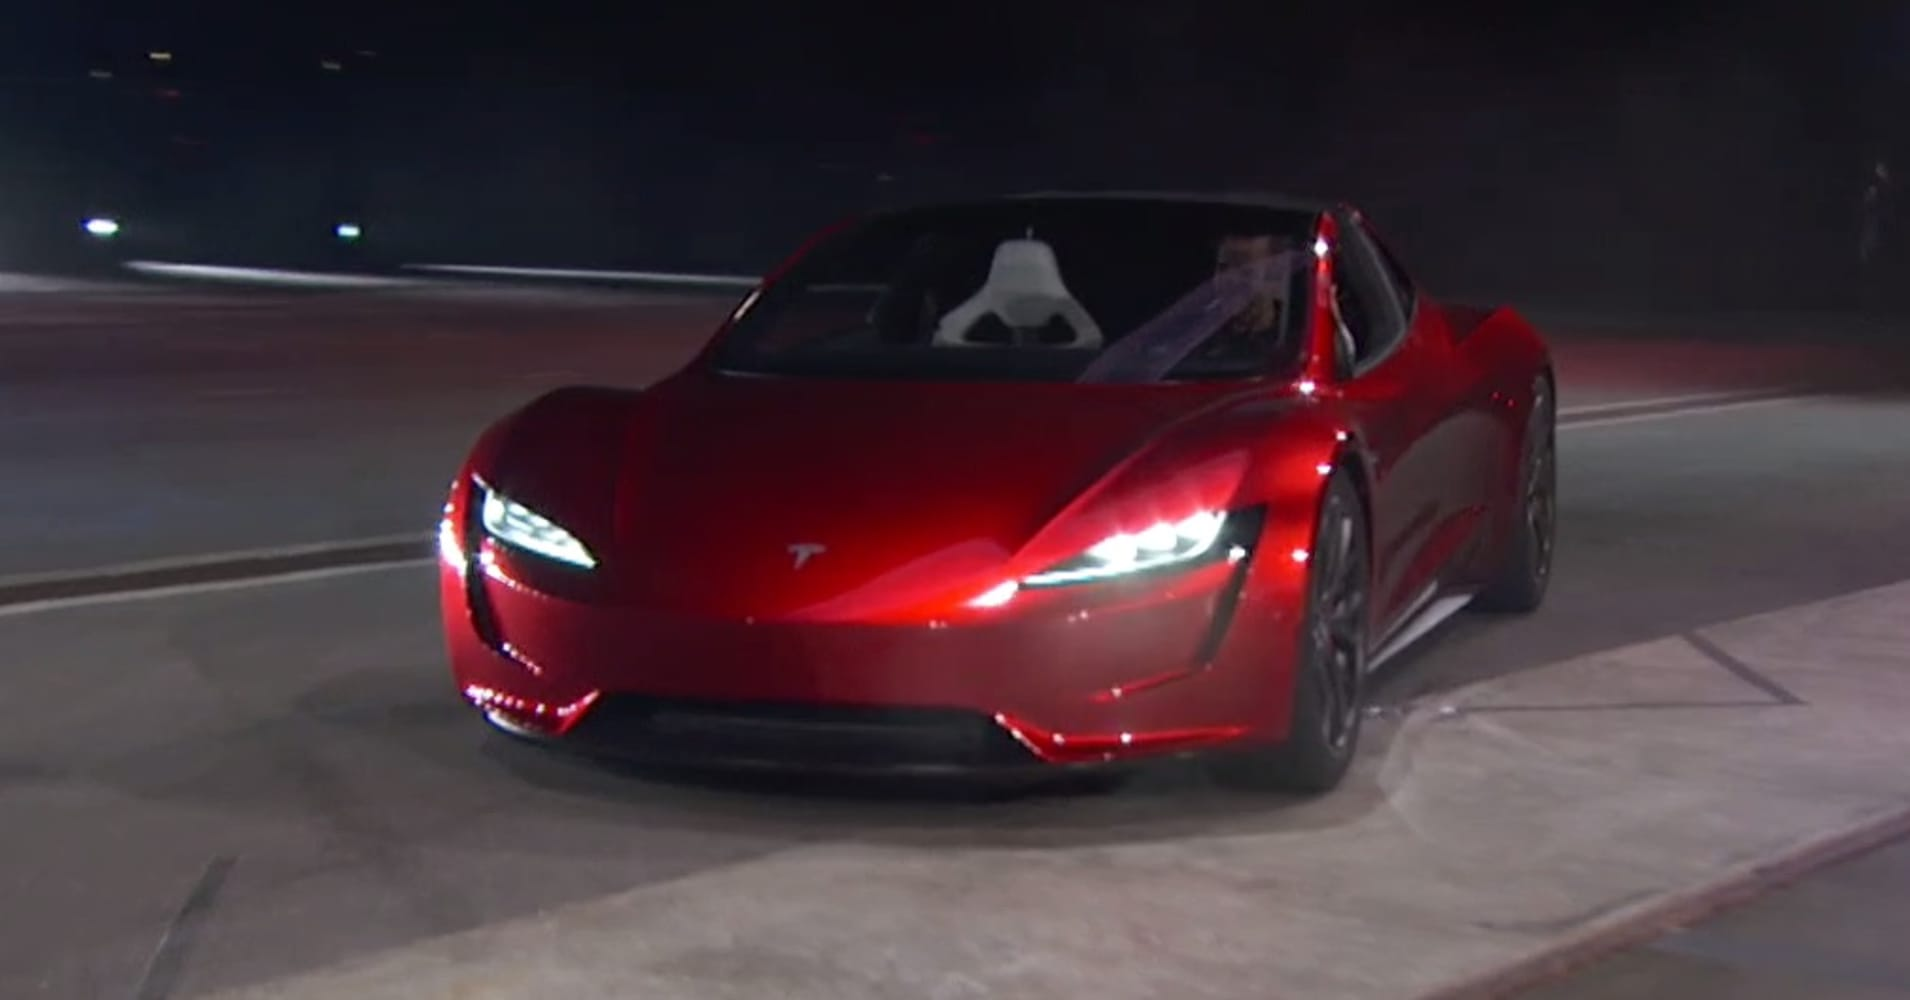 Diesel Wallpaper Cars Tesla Ceo Elon Musk Unveils A Surprise New Car A New Roadster